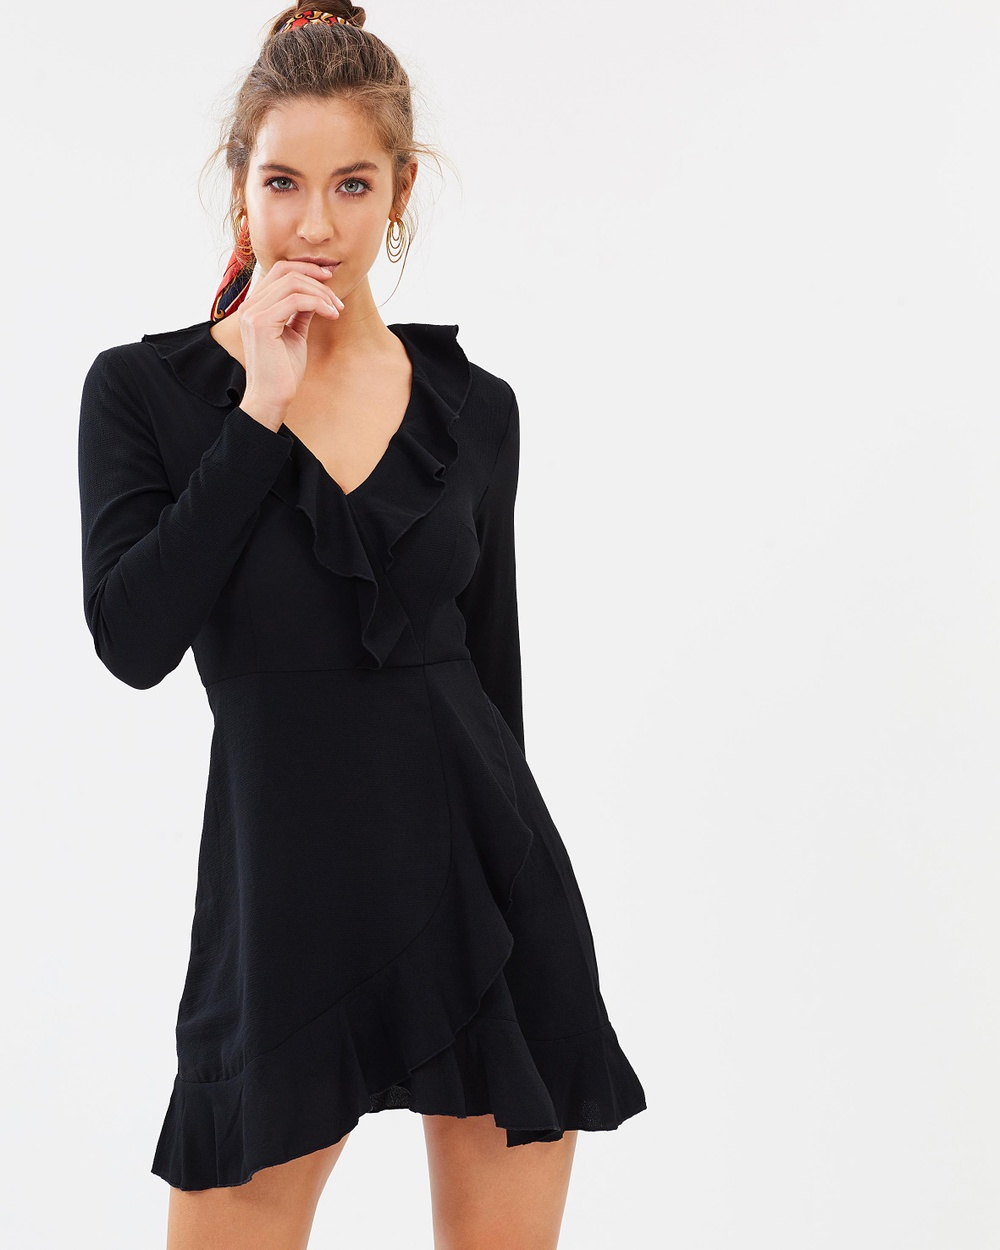 Missguided LS Ruffle Tea Dress Dresses Black LS Ruffle Tea Dress